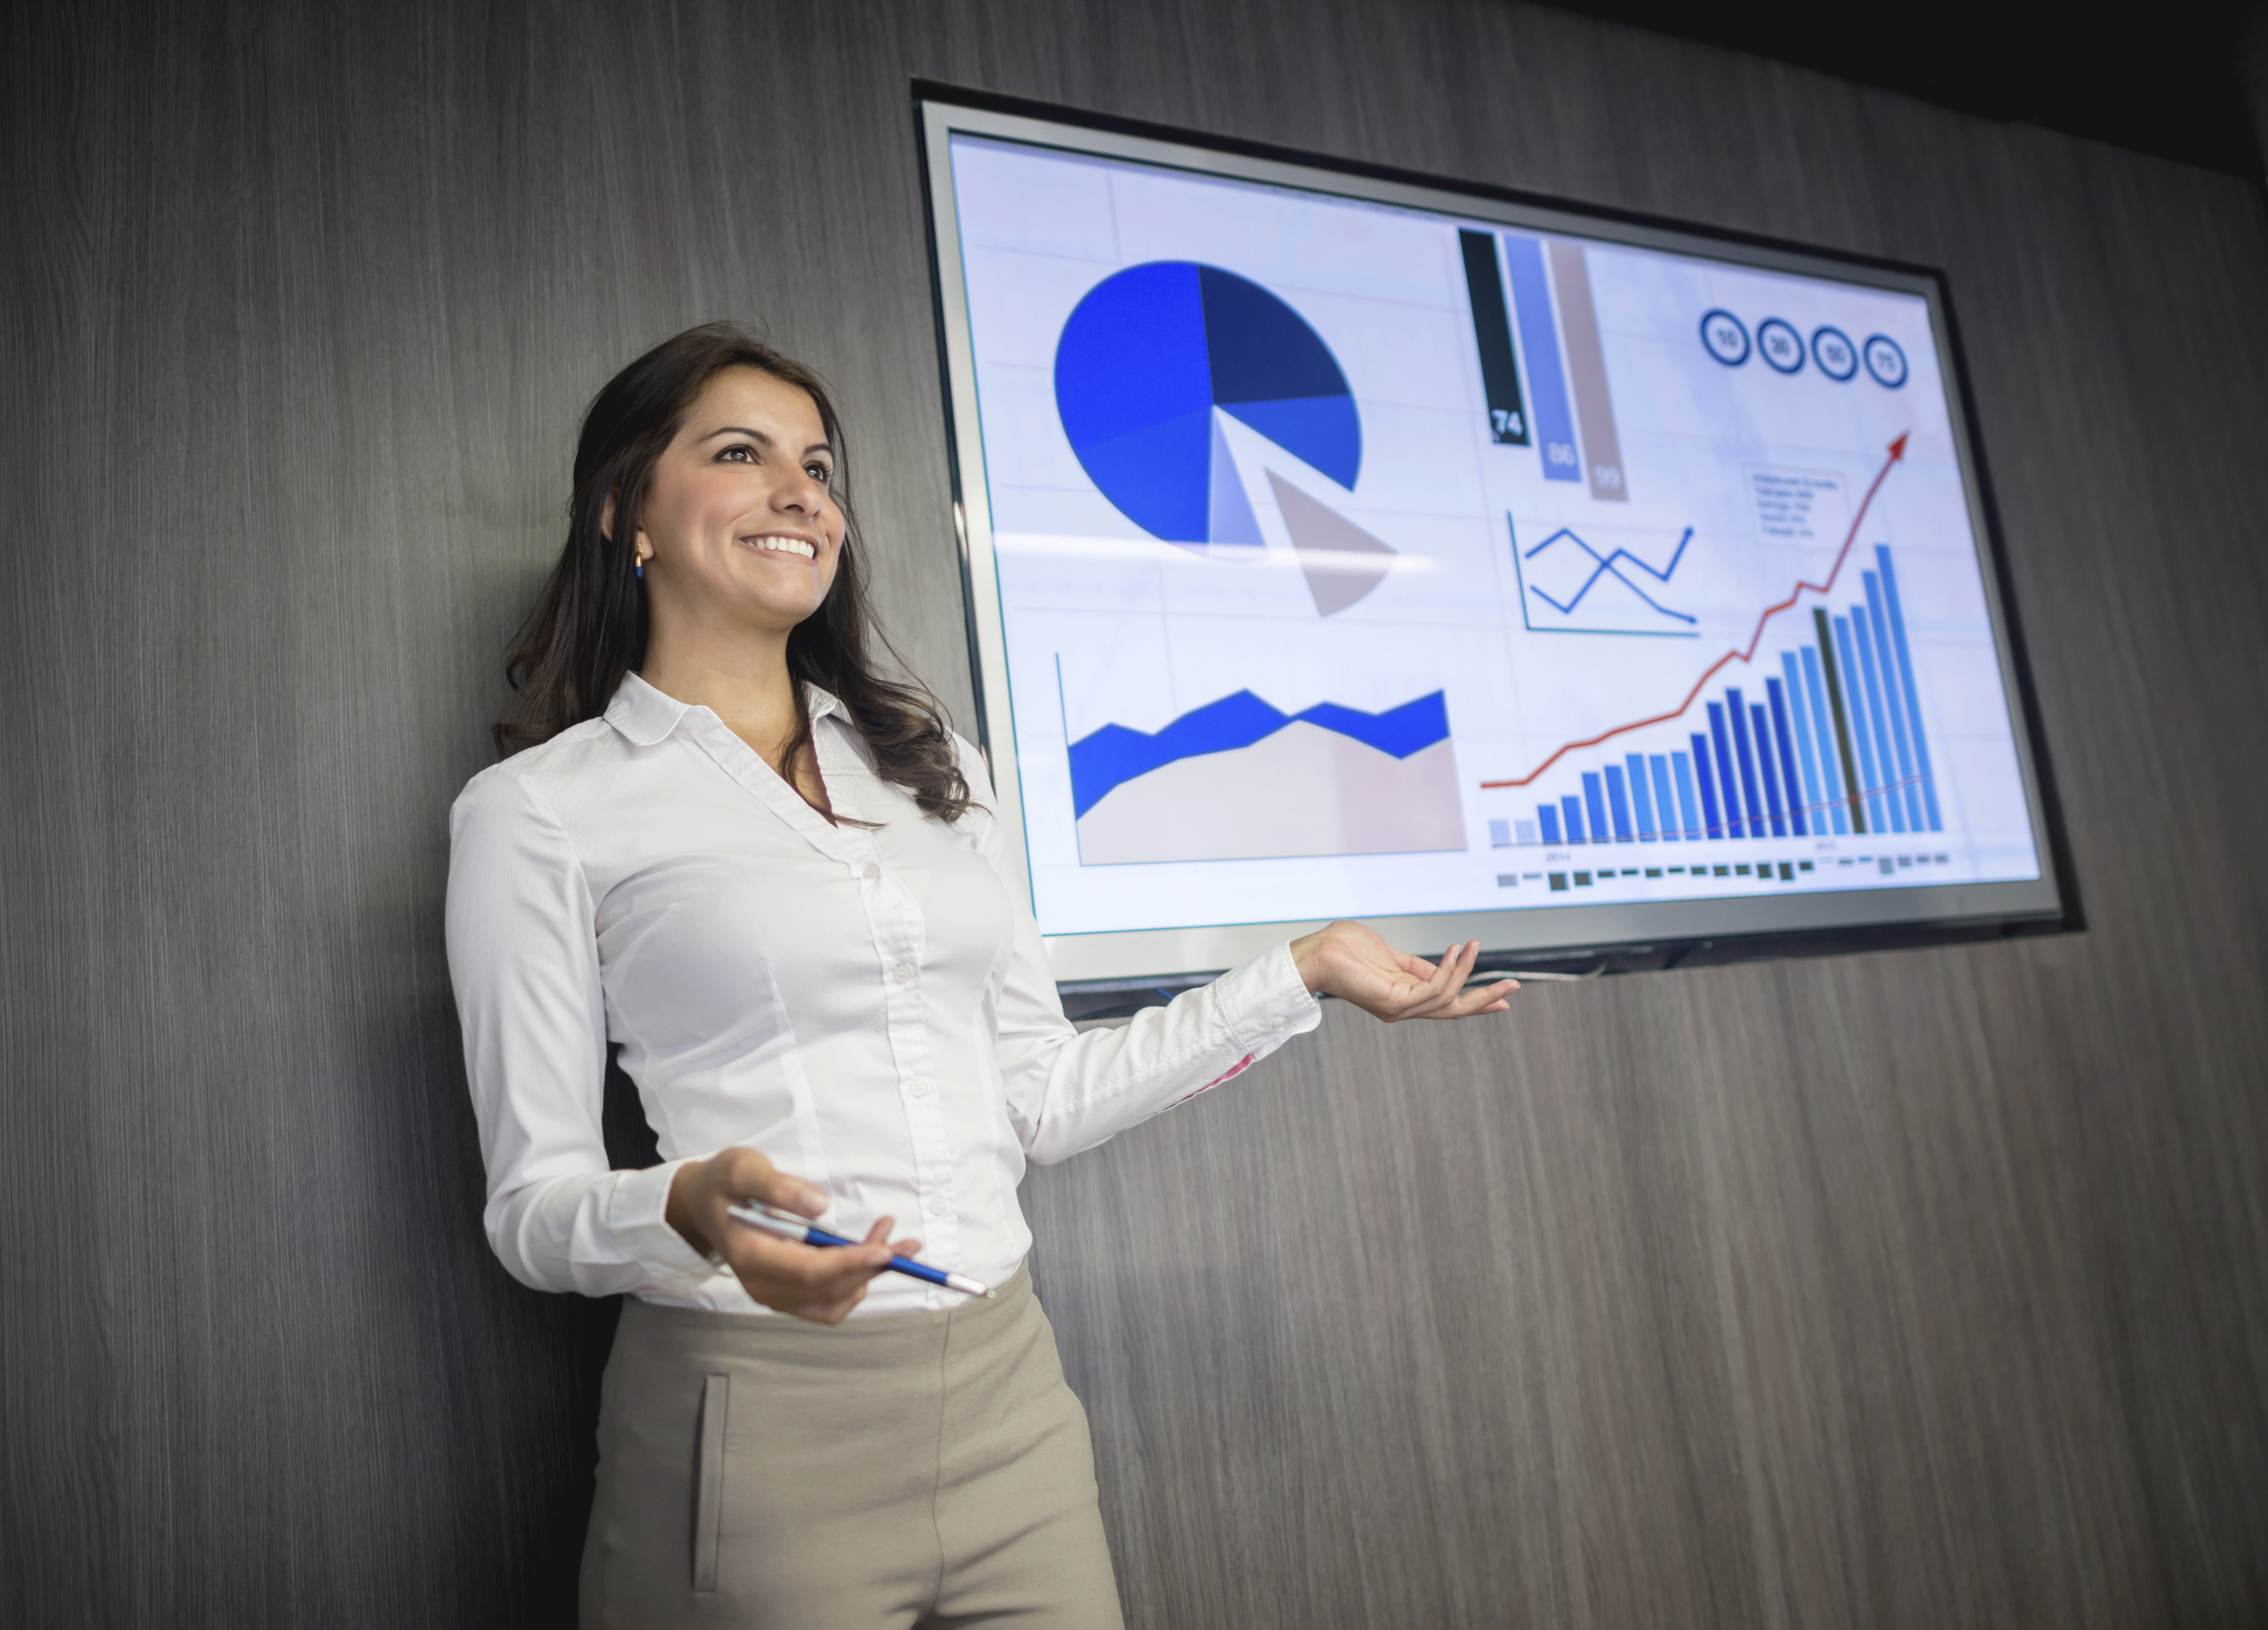 Successful woman making a presentation in a business meeting and showing statistic graphs